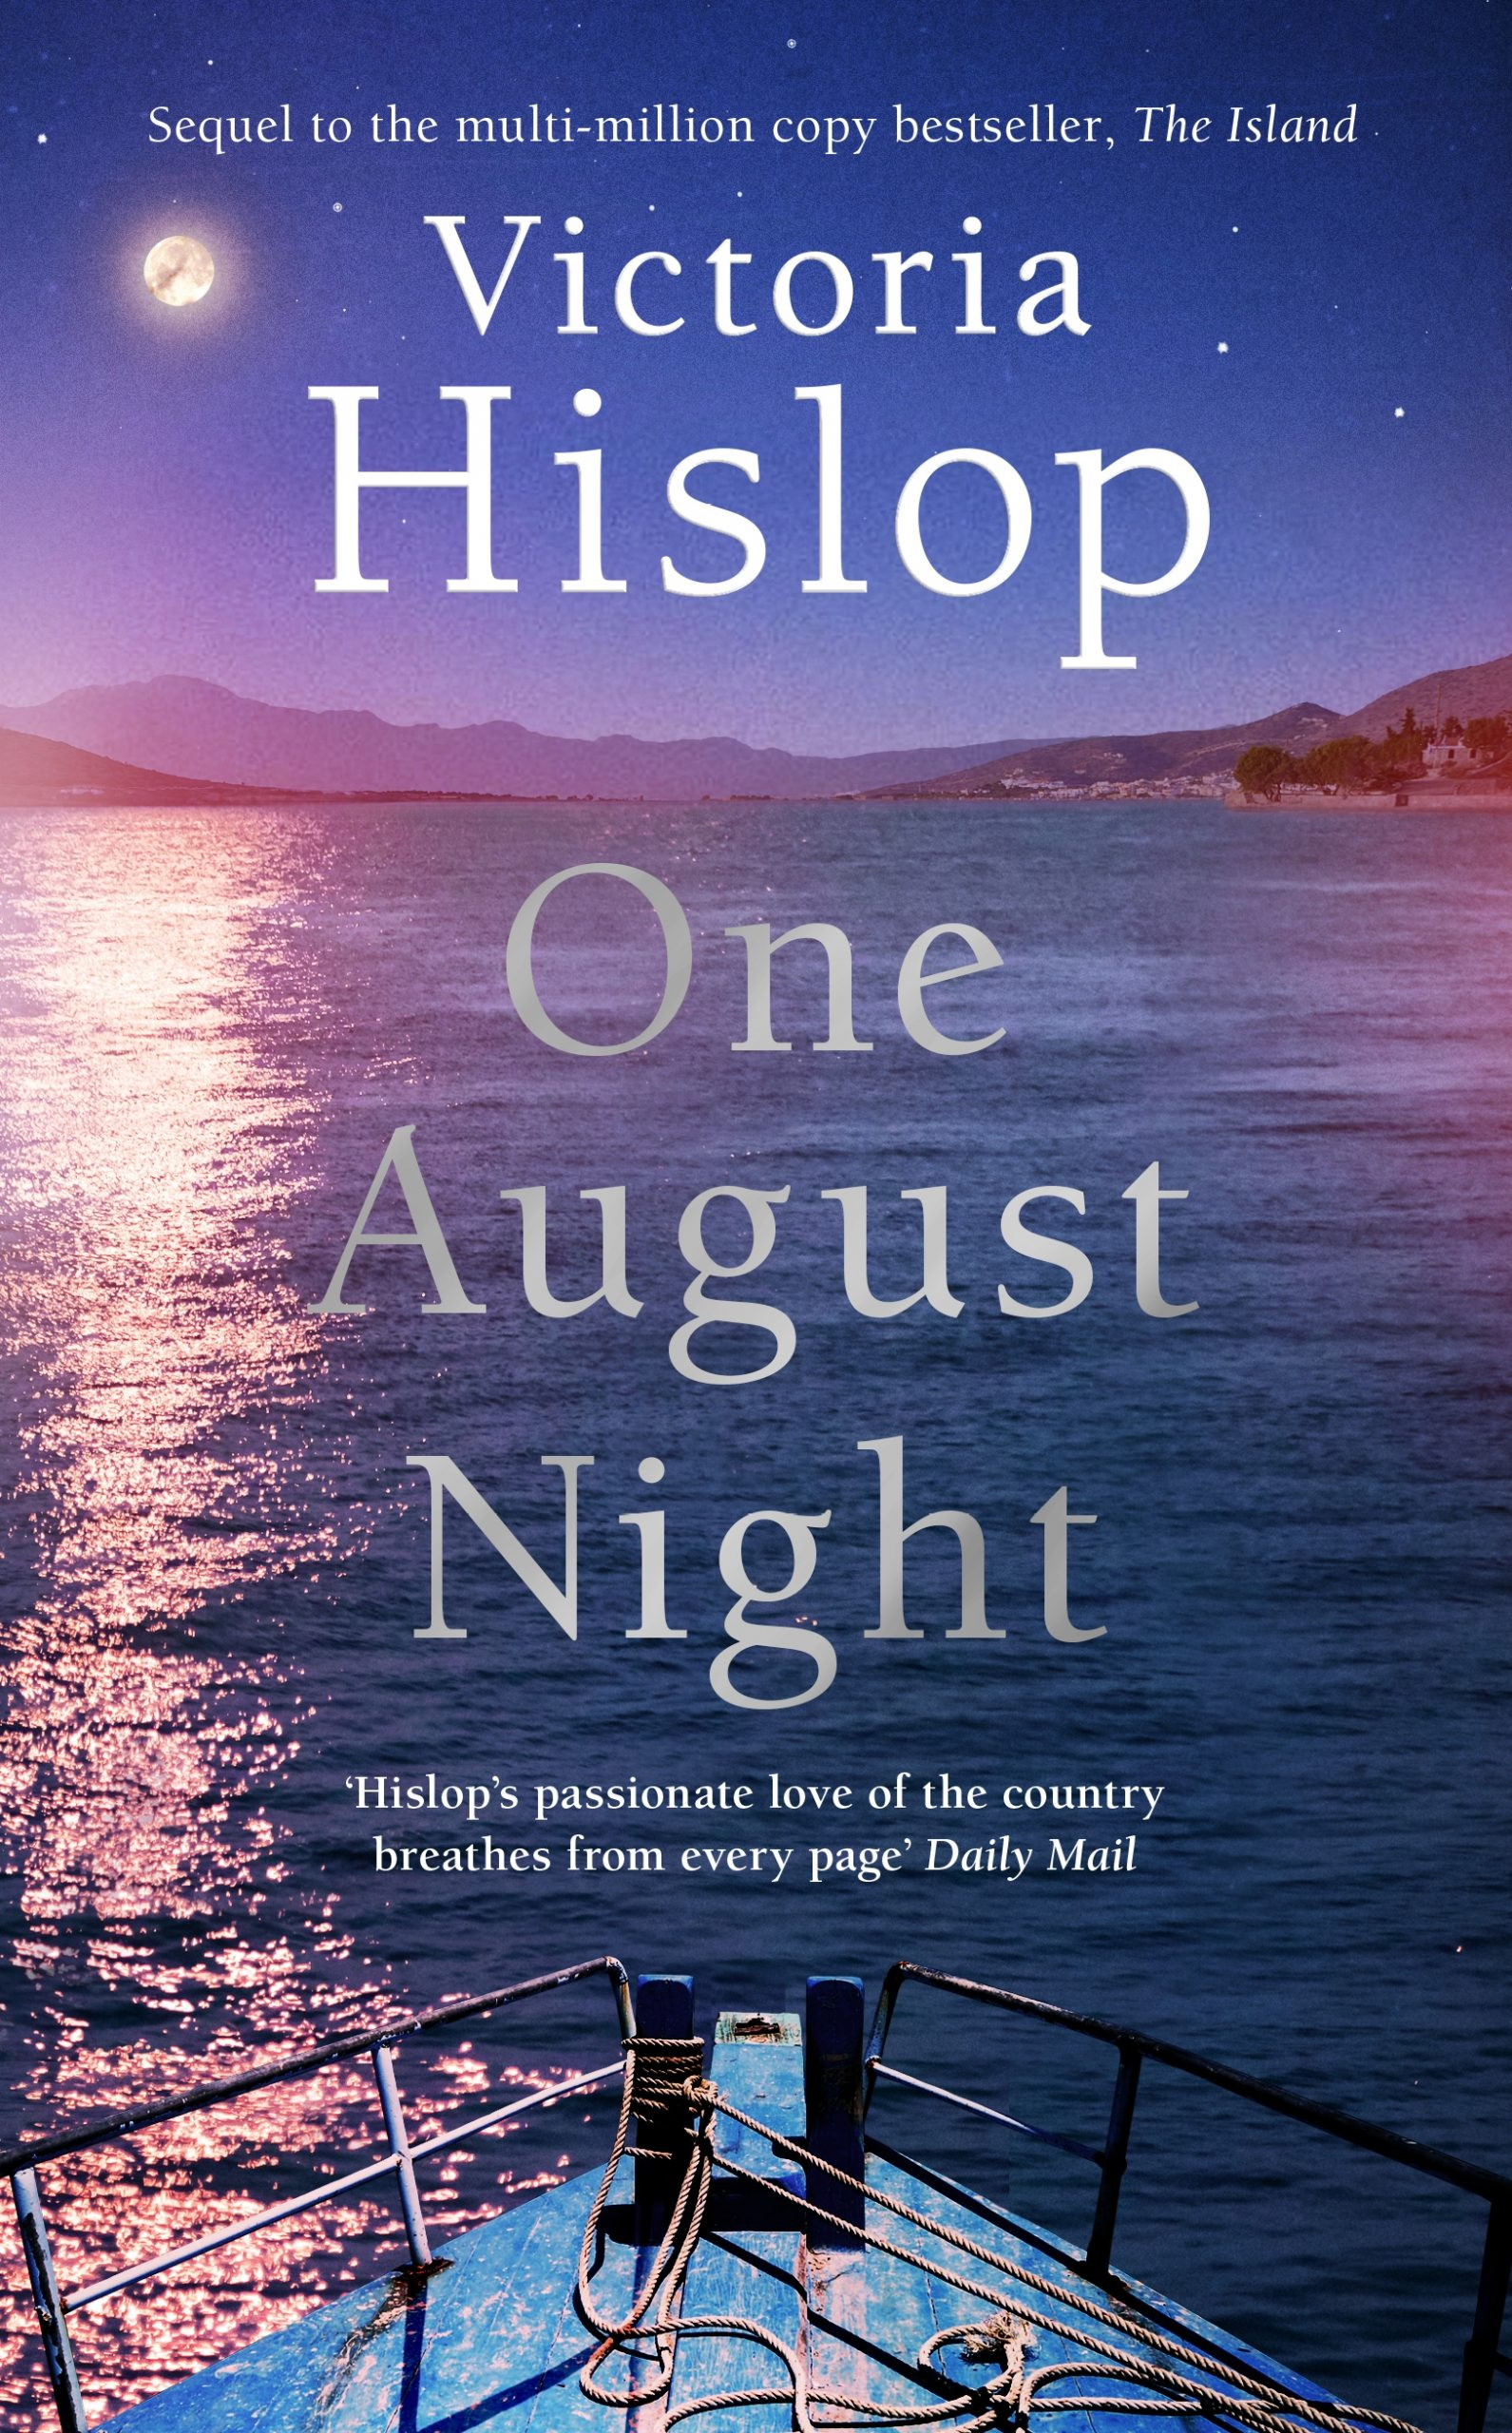 One Night in August by Victoria Hislop